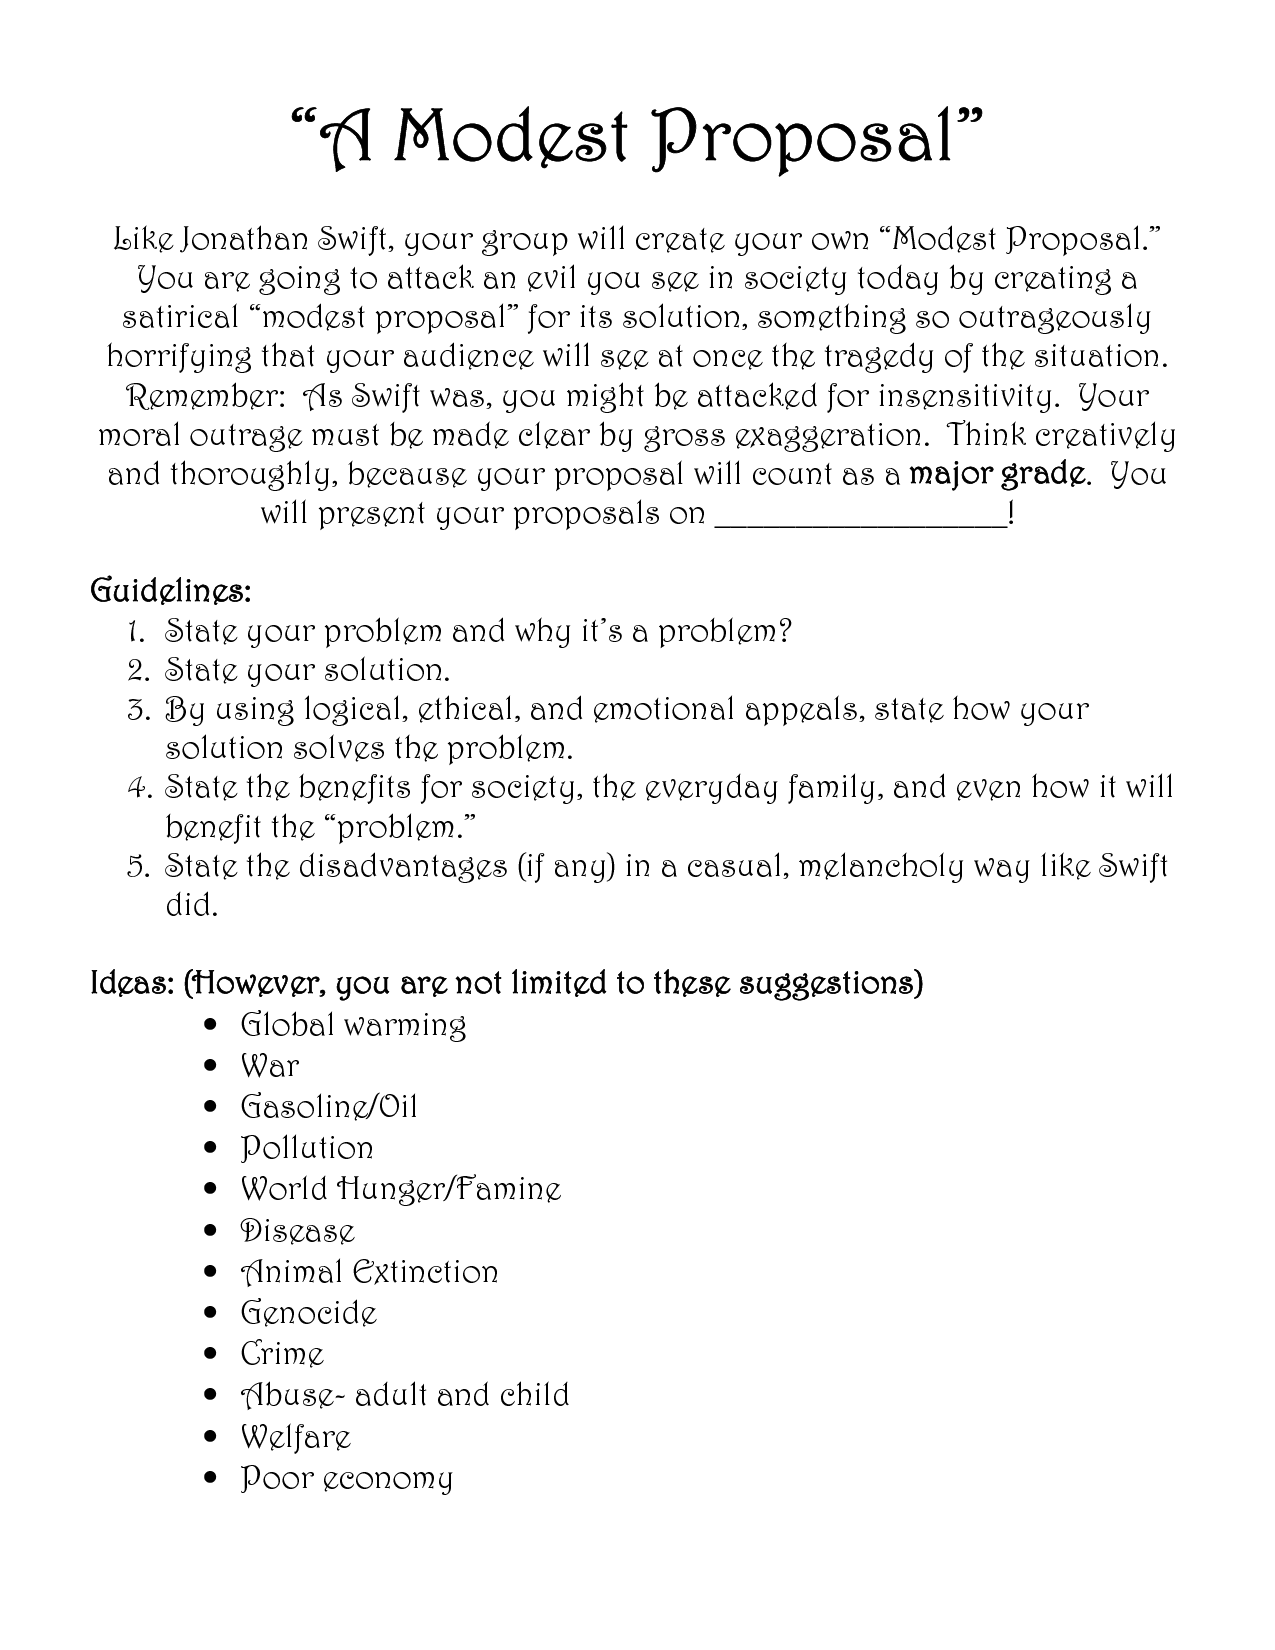 Modest Proposal  Unit  Satire  Pinterest  Modest Proposal  How To Write A Modest Proposal Essay Starting An Essay On Jonathan  Swifts A Modest Proposal Organize Your Thoughts And More At Our  Handydandy Shmoop